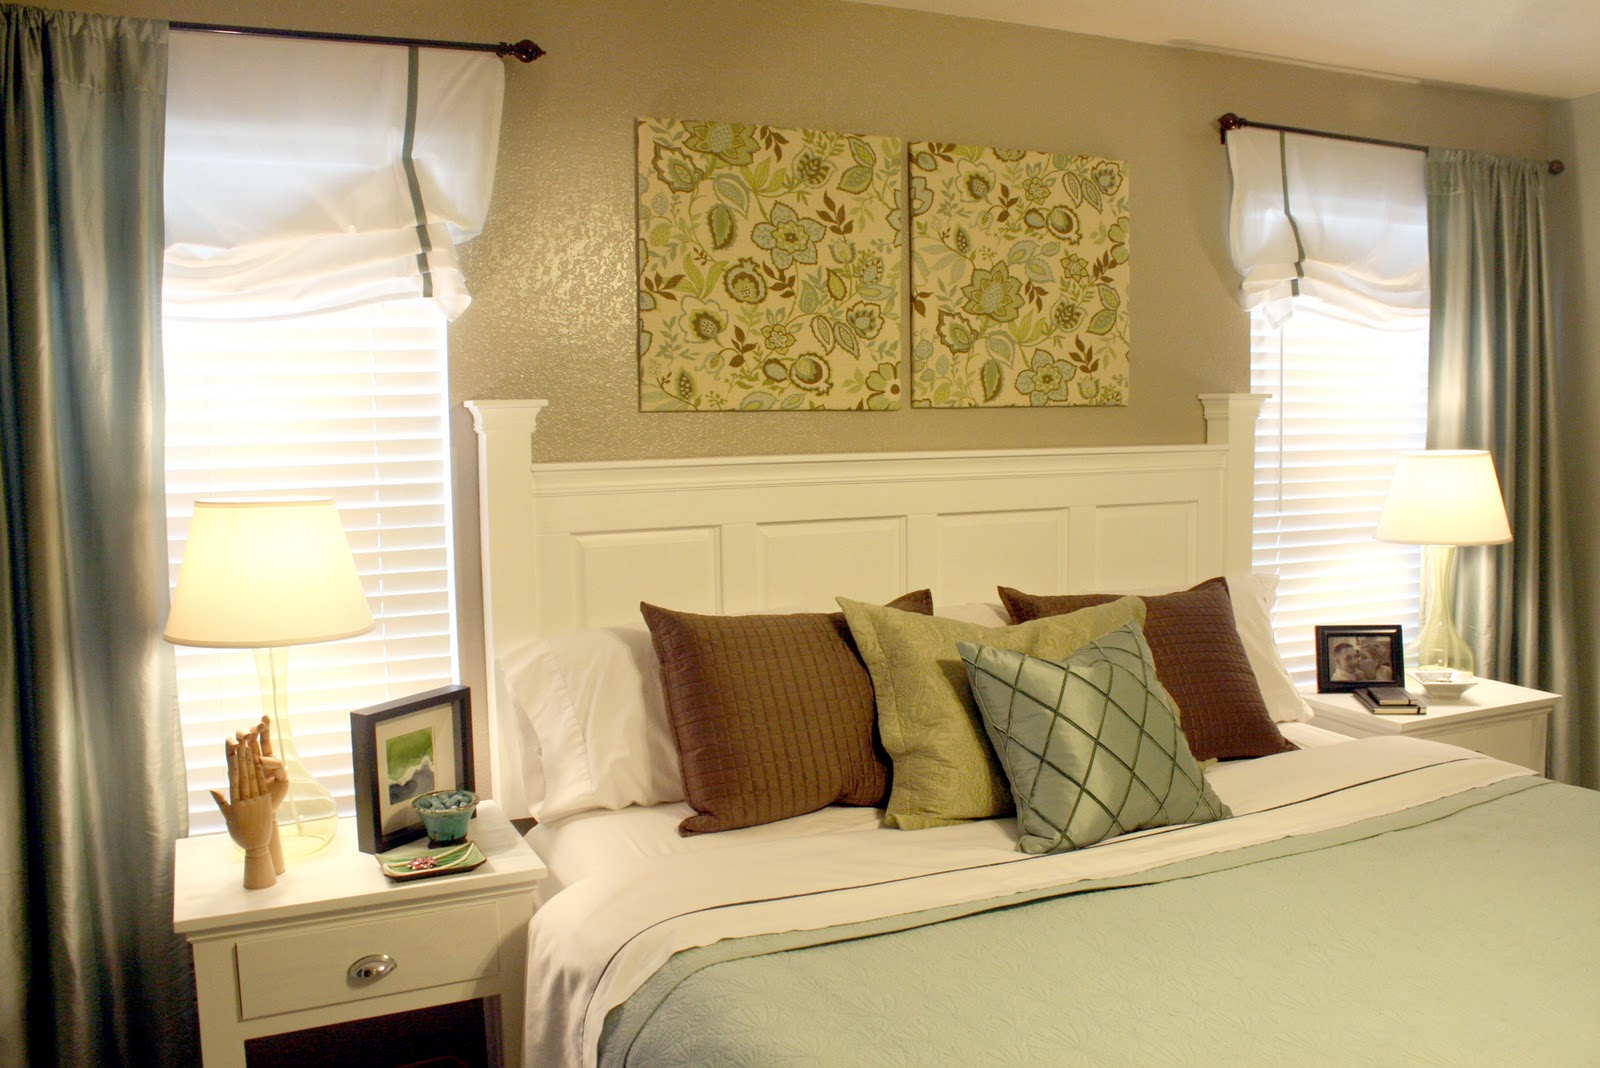 Make A Headboard remodelaholic | head of the board! headboard tutorial